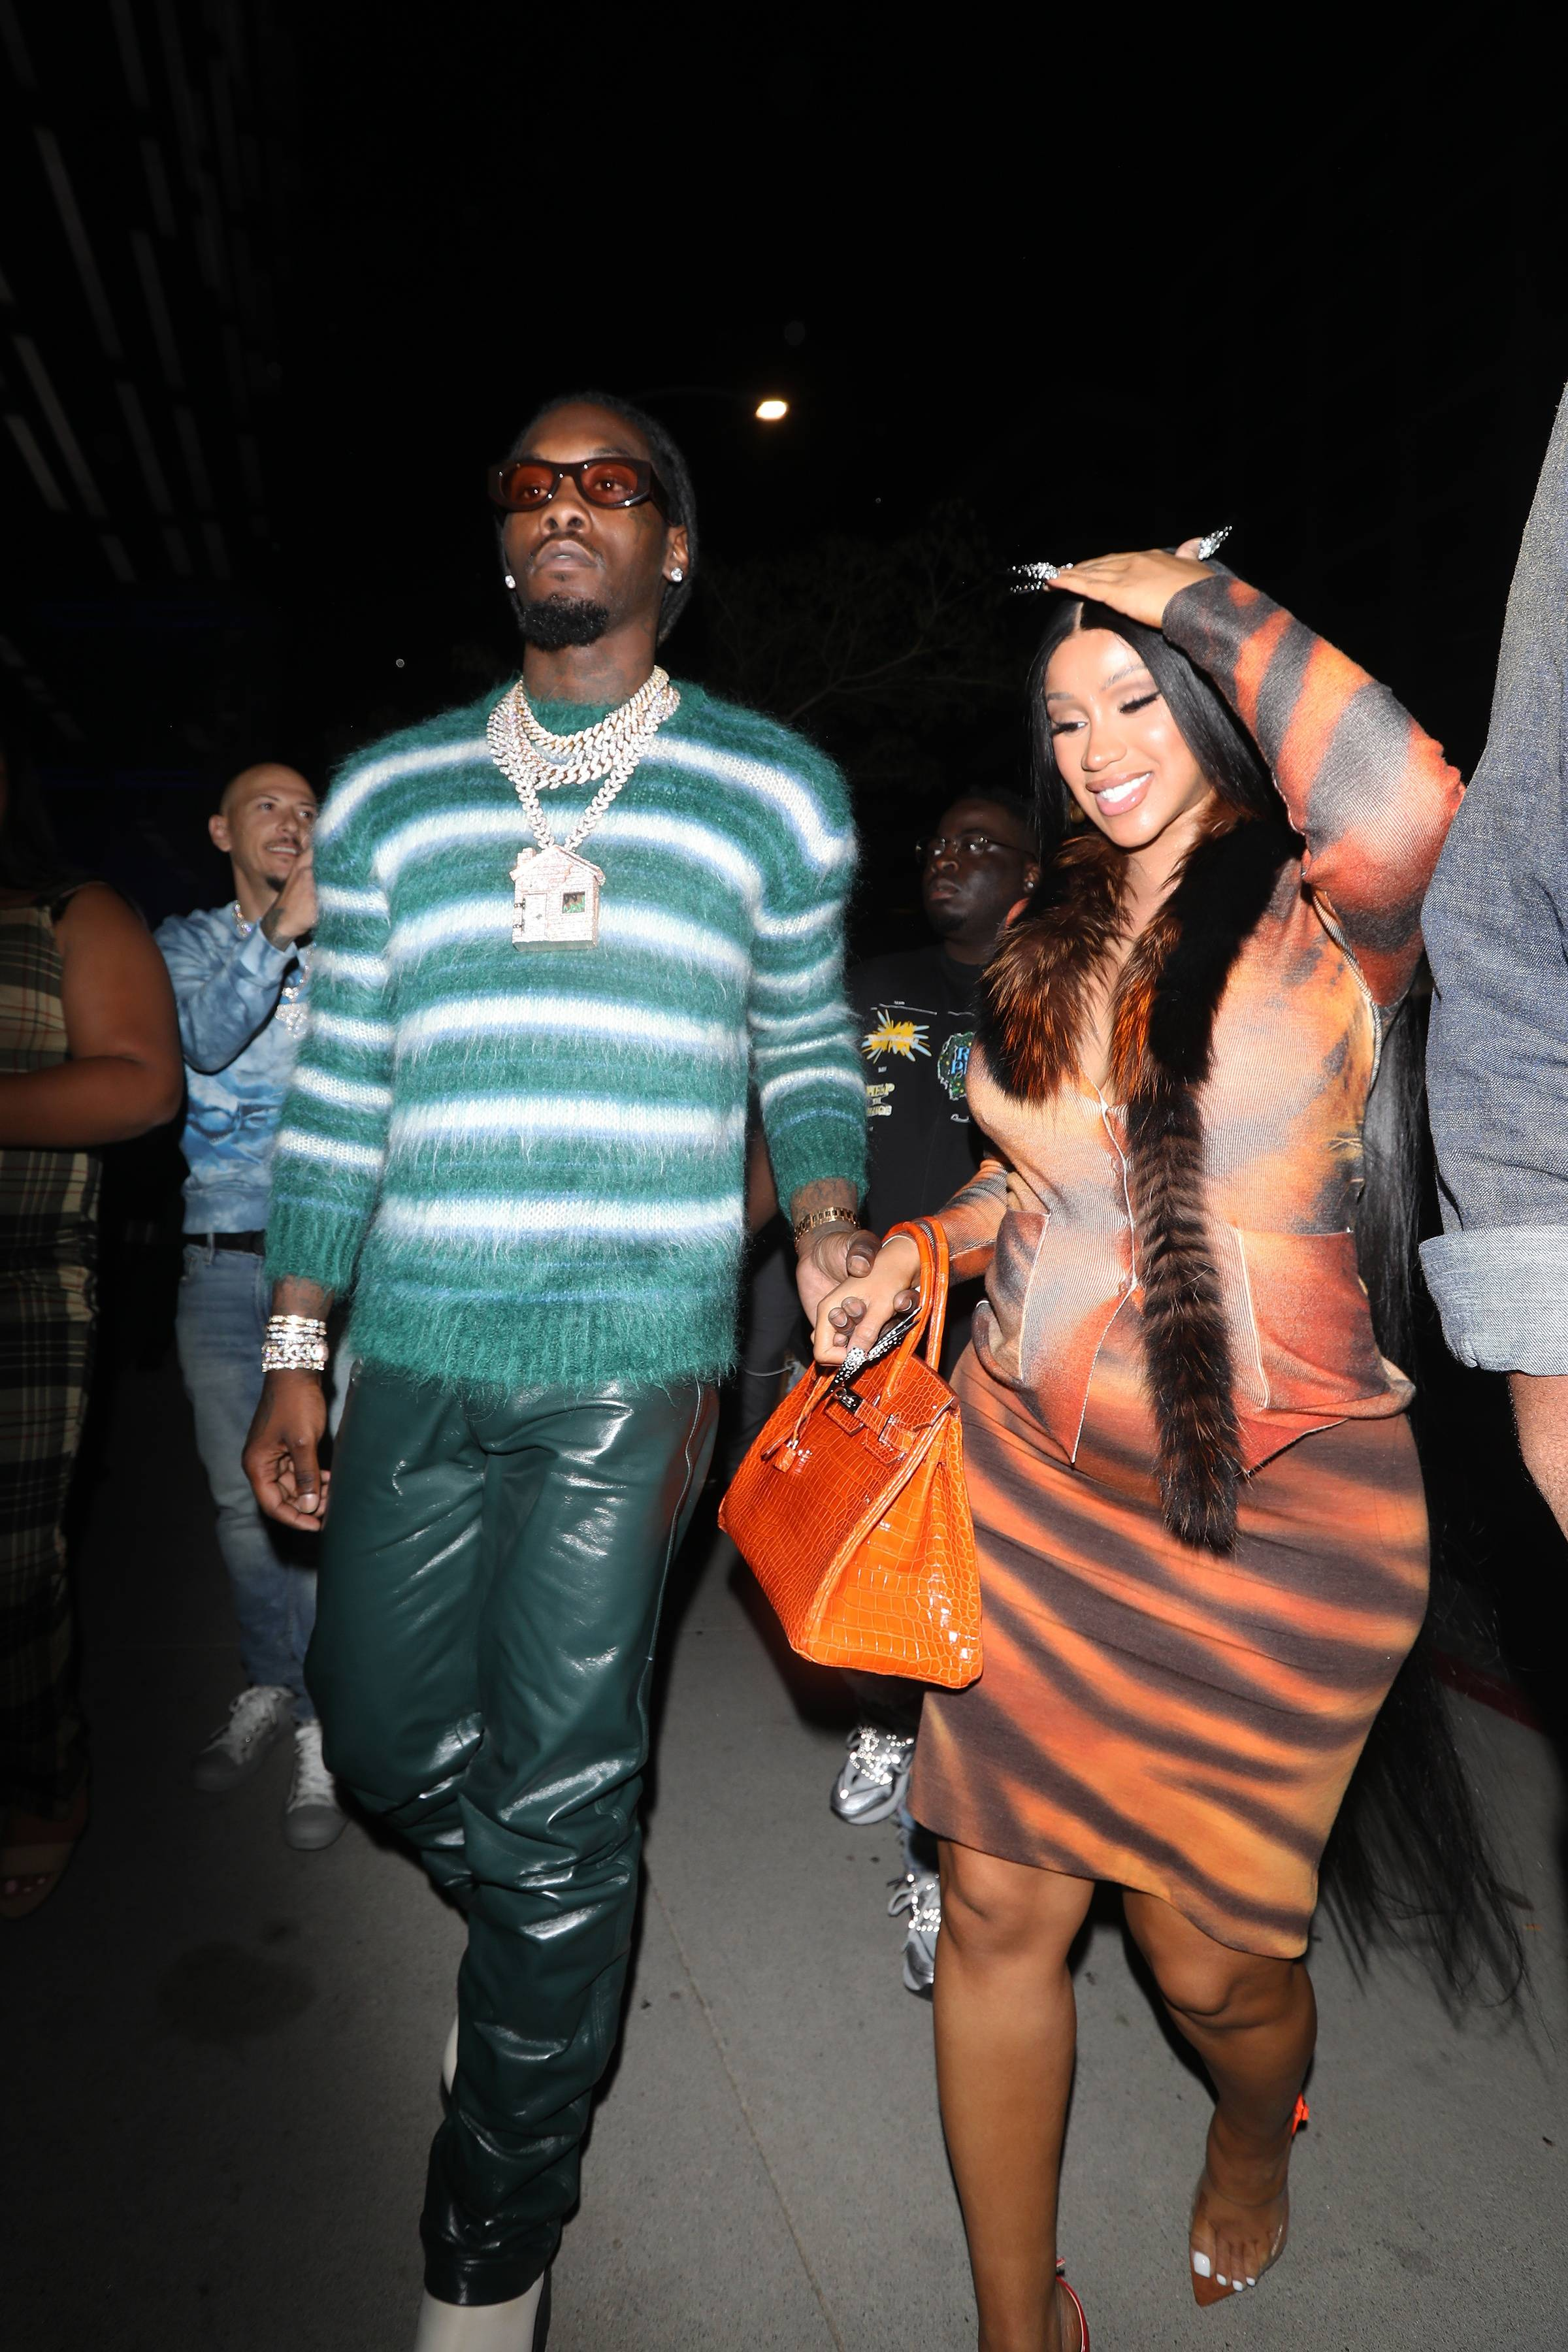 Date Night! - Cardi B and Offset enjoyed a date night out in LA on Sunday, after the BET Awards. The superstar couple stepped out in major style with Cardi donning a vintage Roberto Cavalli dress from FW 2000 collection, and her hubby Offset stepped rocking a Prada Men's sweater. The mama-to-be also carried one of her croc Hermès Birkin bags from her impressive collection. Congratulations again to the lovely couple! (Photo by Photographer Group/MEGA/GC Images)